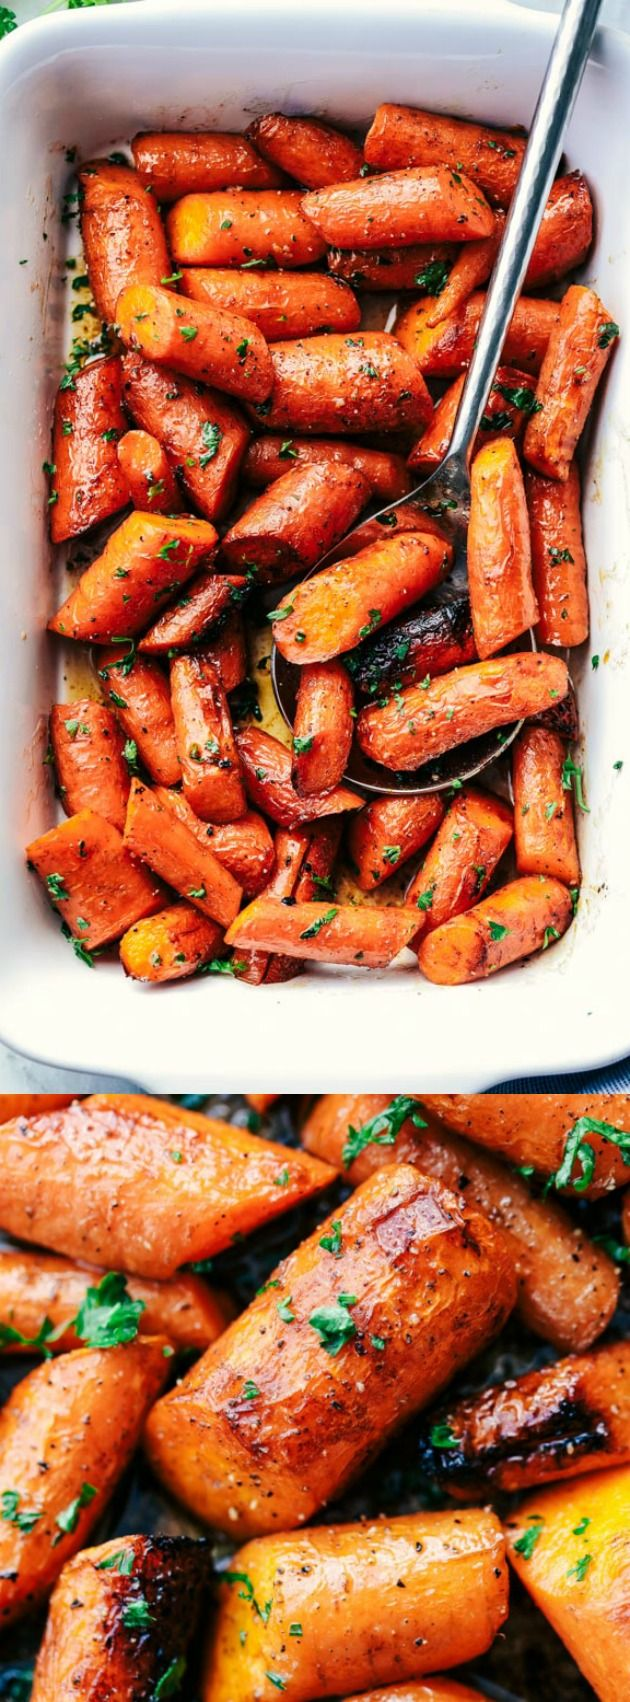 These Roasted Brown Butter Honey Garlic Carrots from The Recipe Critic make an excellent side dish for any meal! They are roasted to tender perfection in the most incredible brown butter honey garlic sauce!